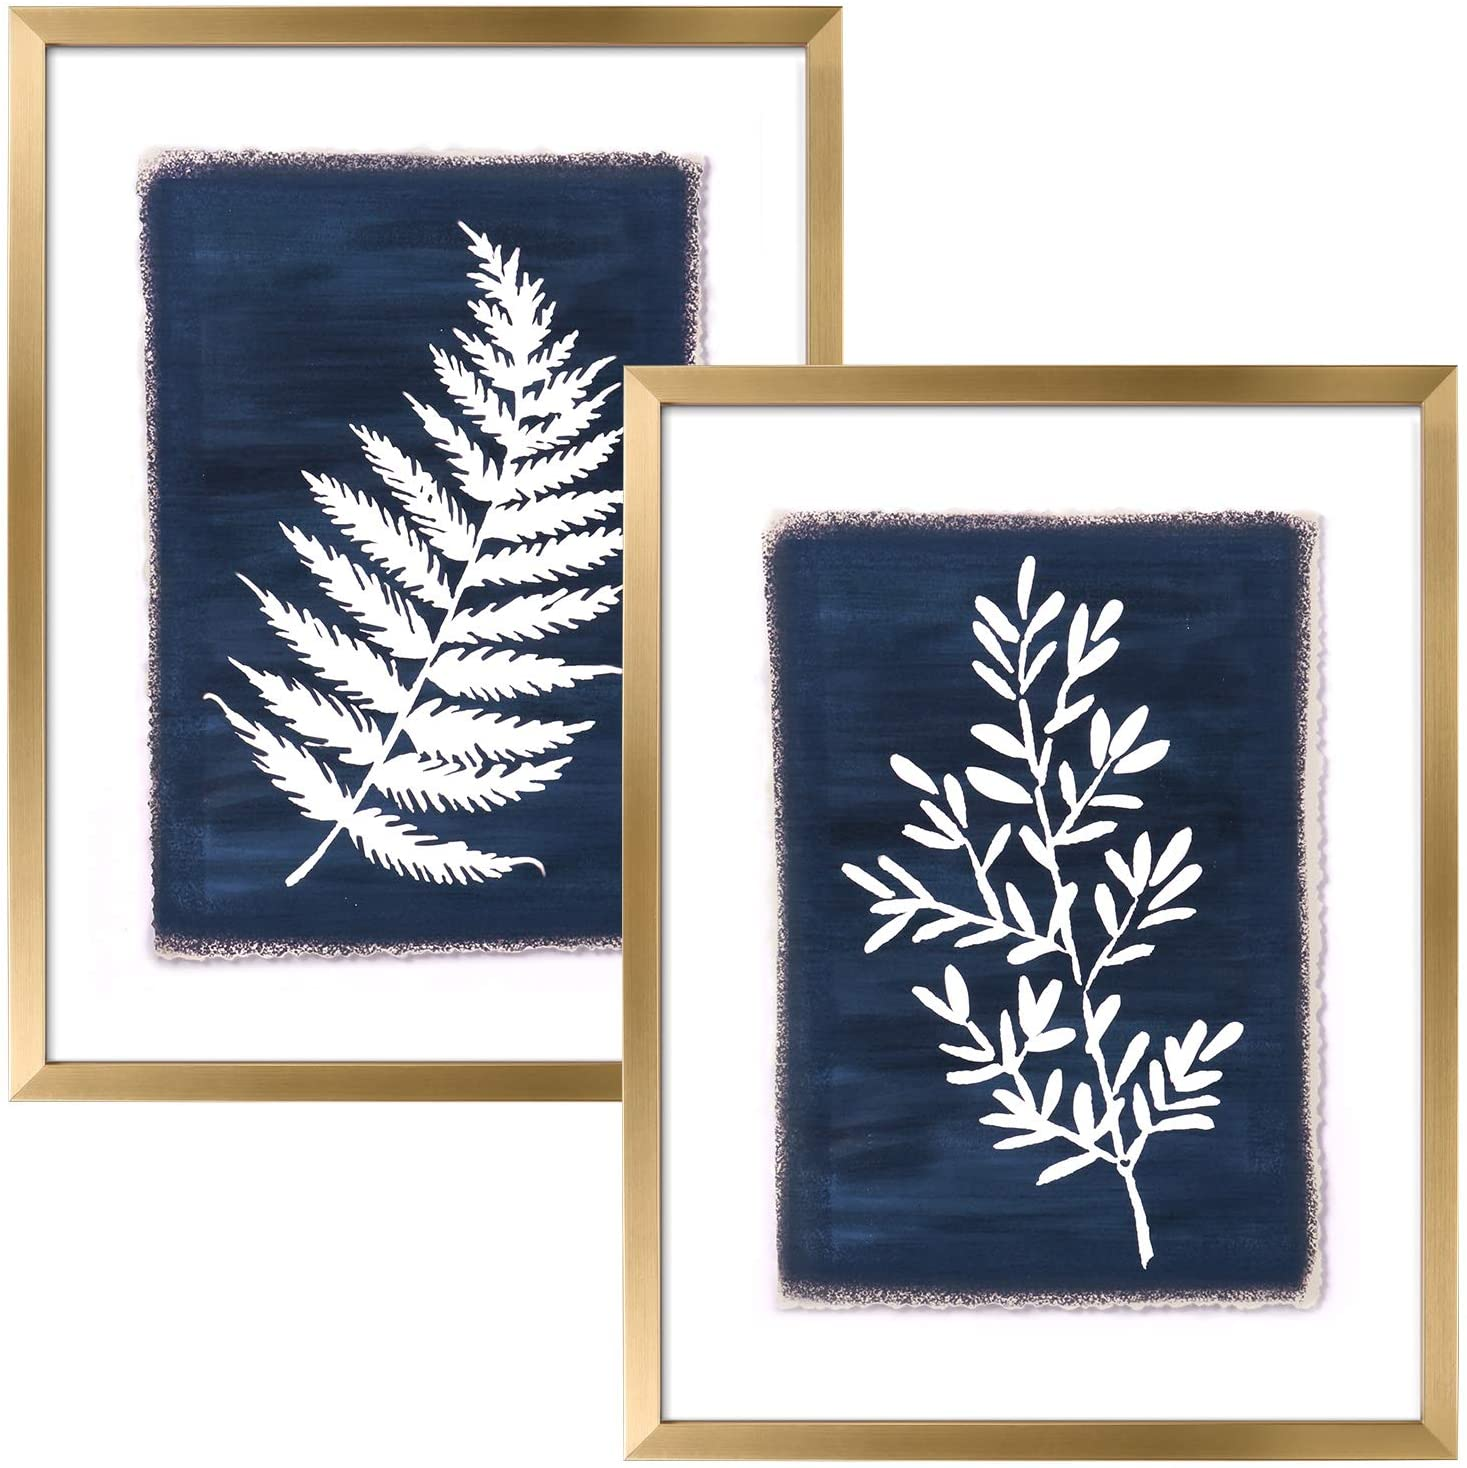 ArtbyHannah 2 Pack 12x16 Inch Framed Botanical Wall Art Decor with Gold Frame and Decorative Tropical Plant Pictures Print For Home Decoration